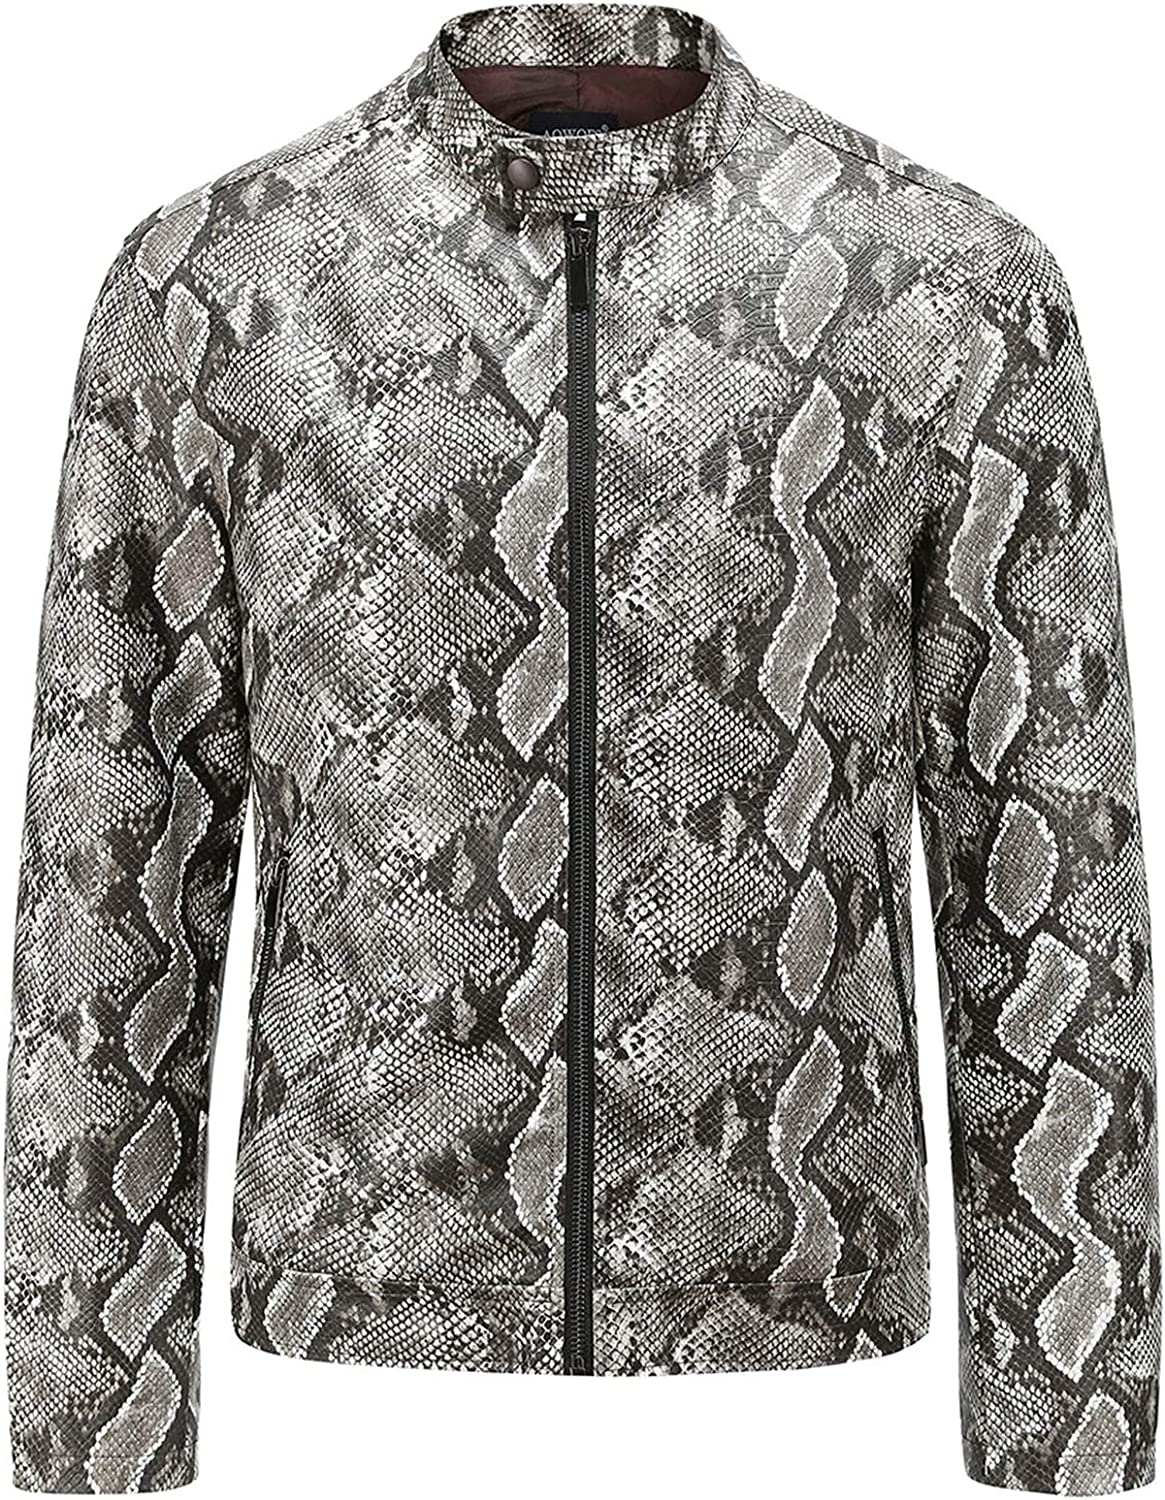 Men's Snakeskin Leather Jacket,Washed PU Leather Coat,For Outdoor Leisure Cycling Wear